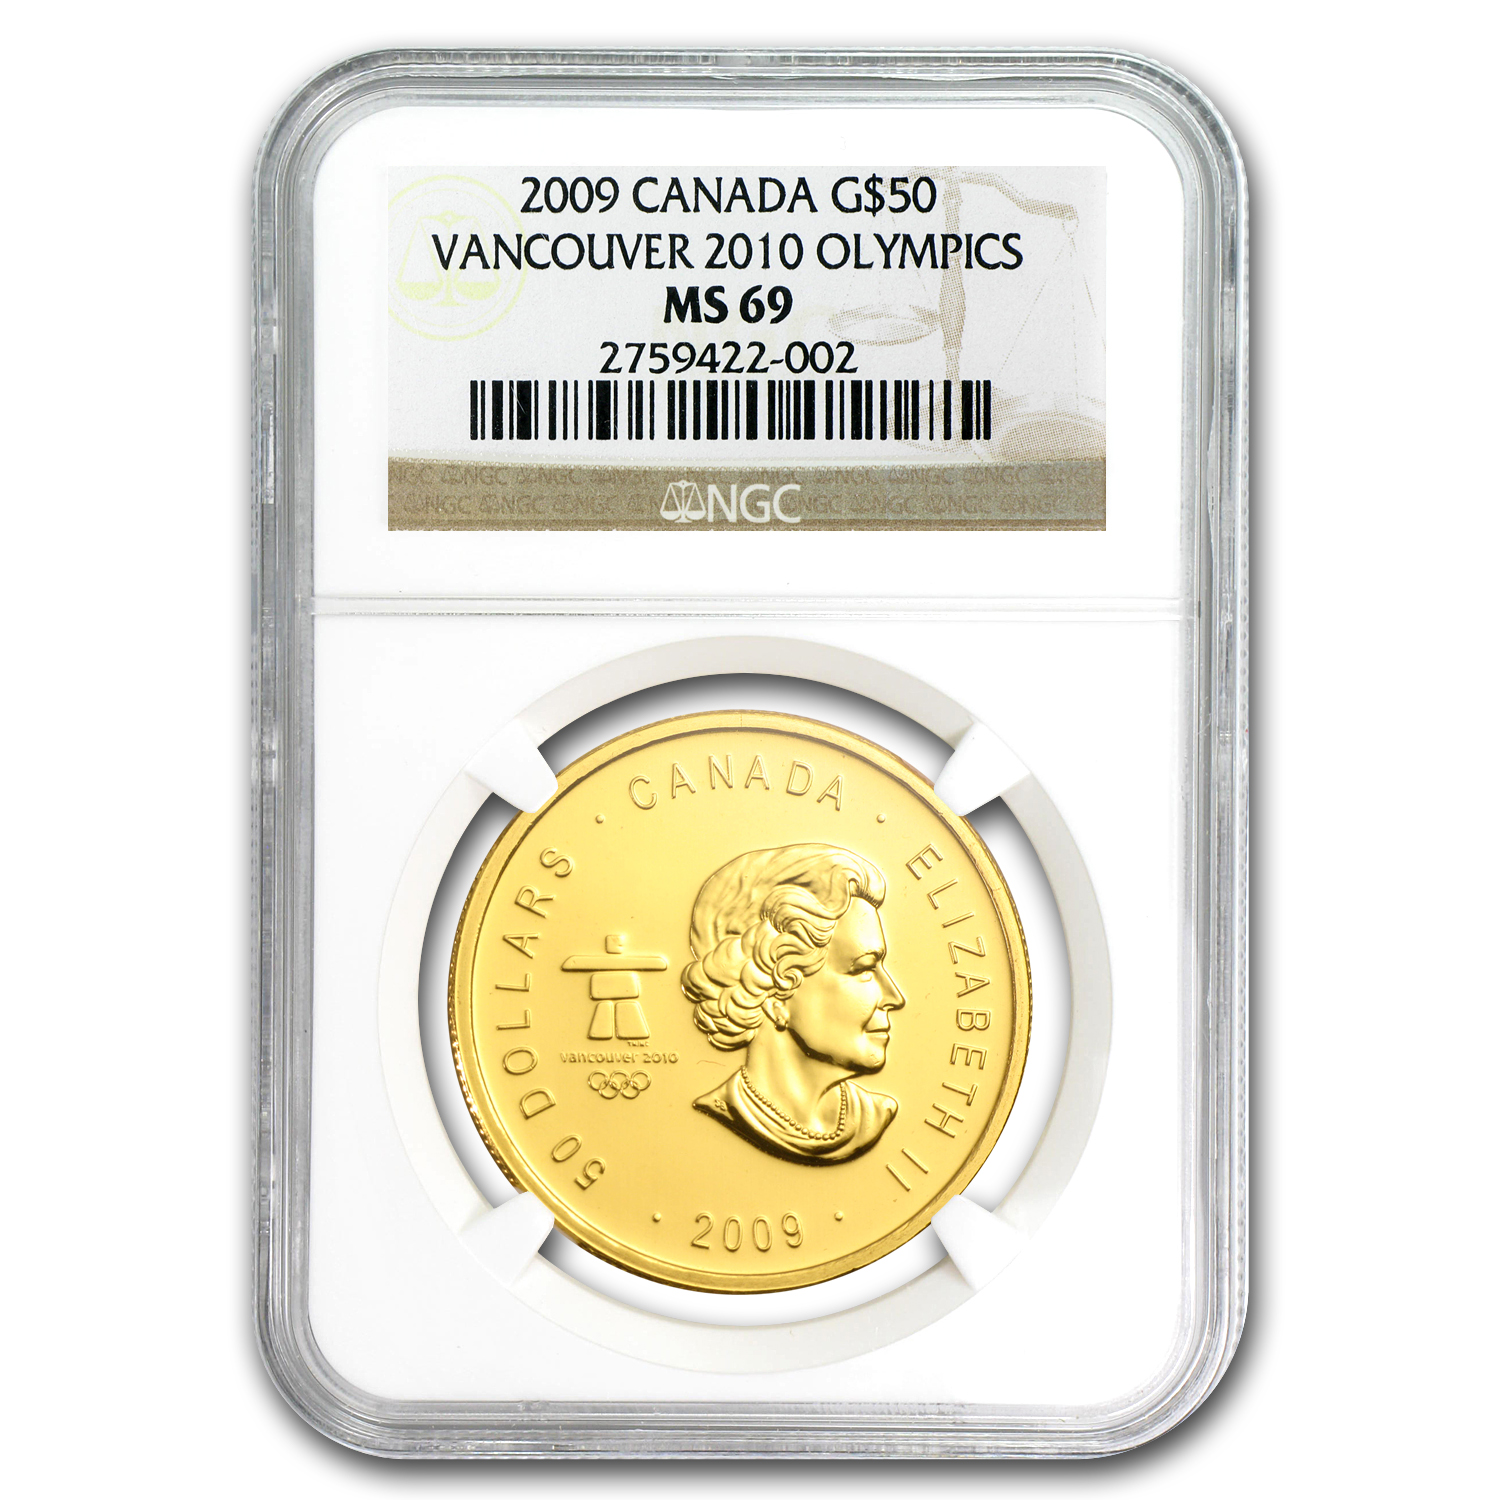 2009 Canada 1 oz Gold Maple Leaf MS-69 NGC (Vancouver)